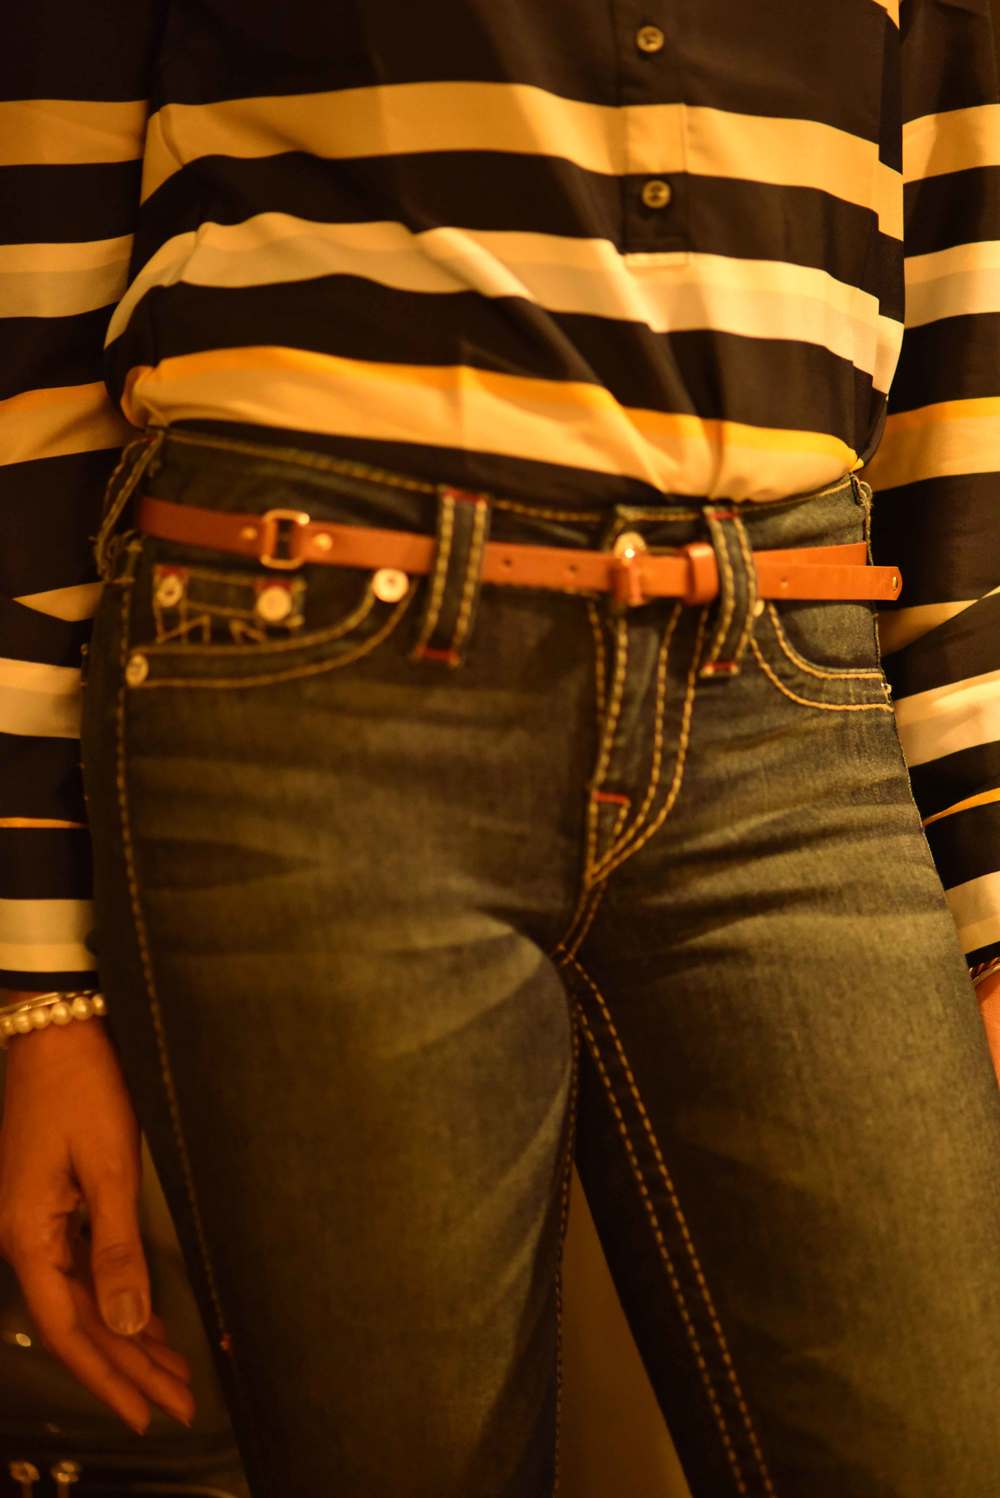 True Religion jean leggings with an Ann Taylor striped top. Image©gunjanvirk